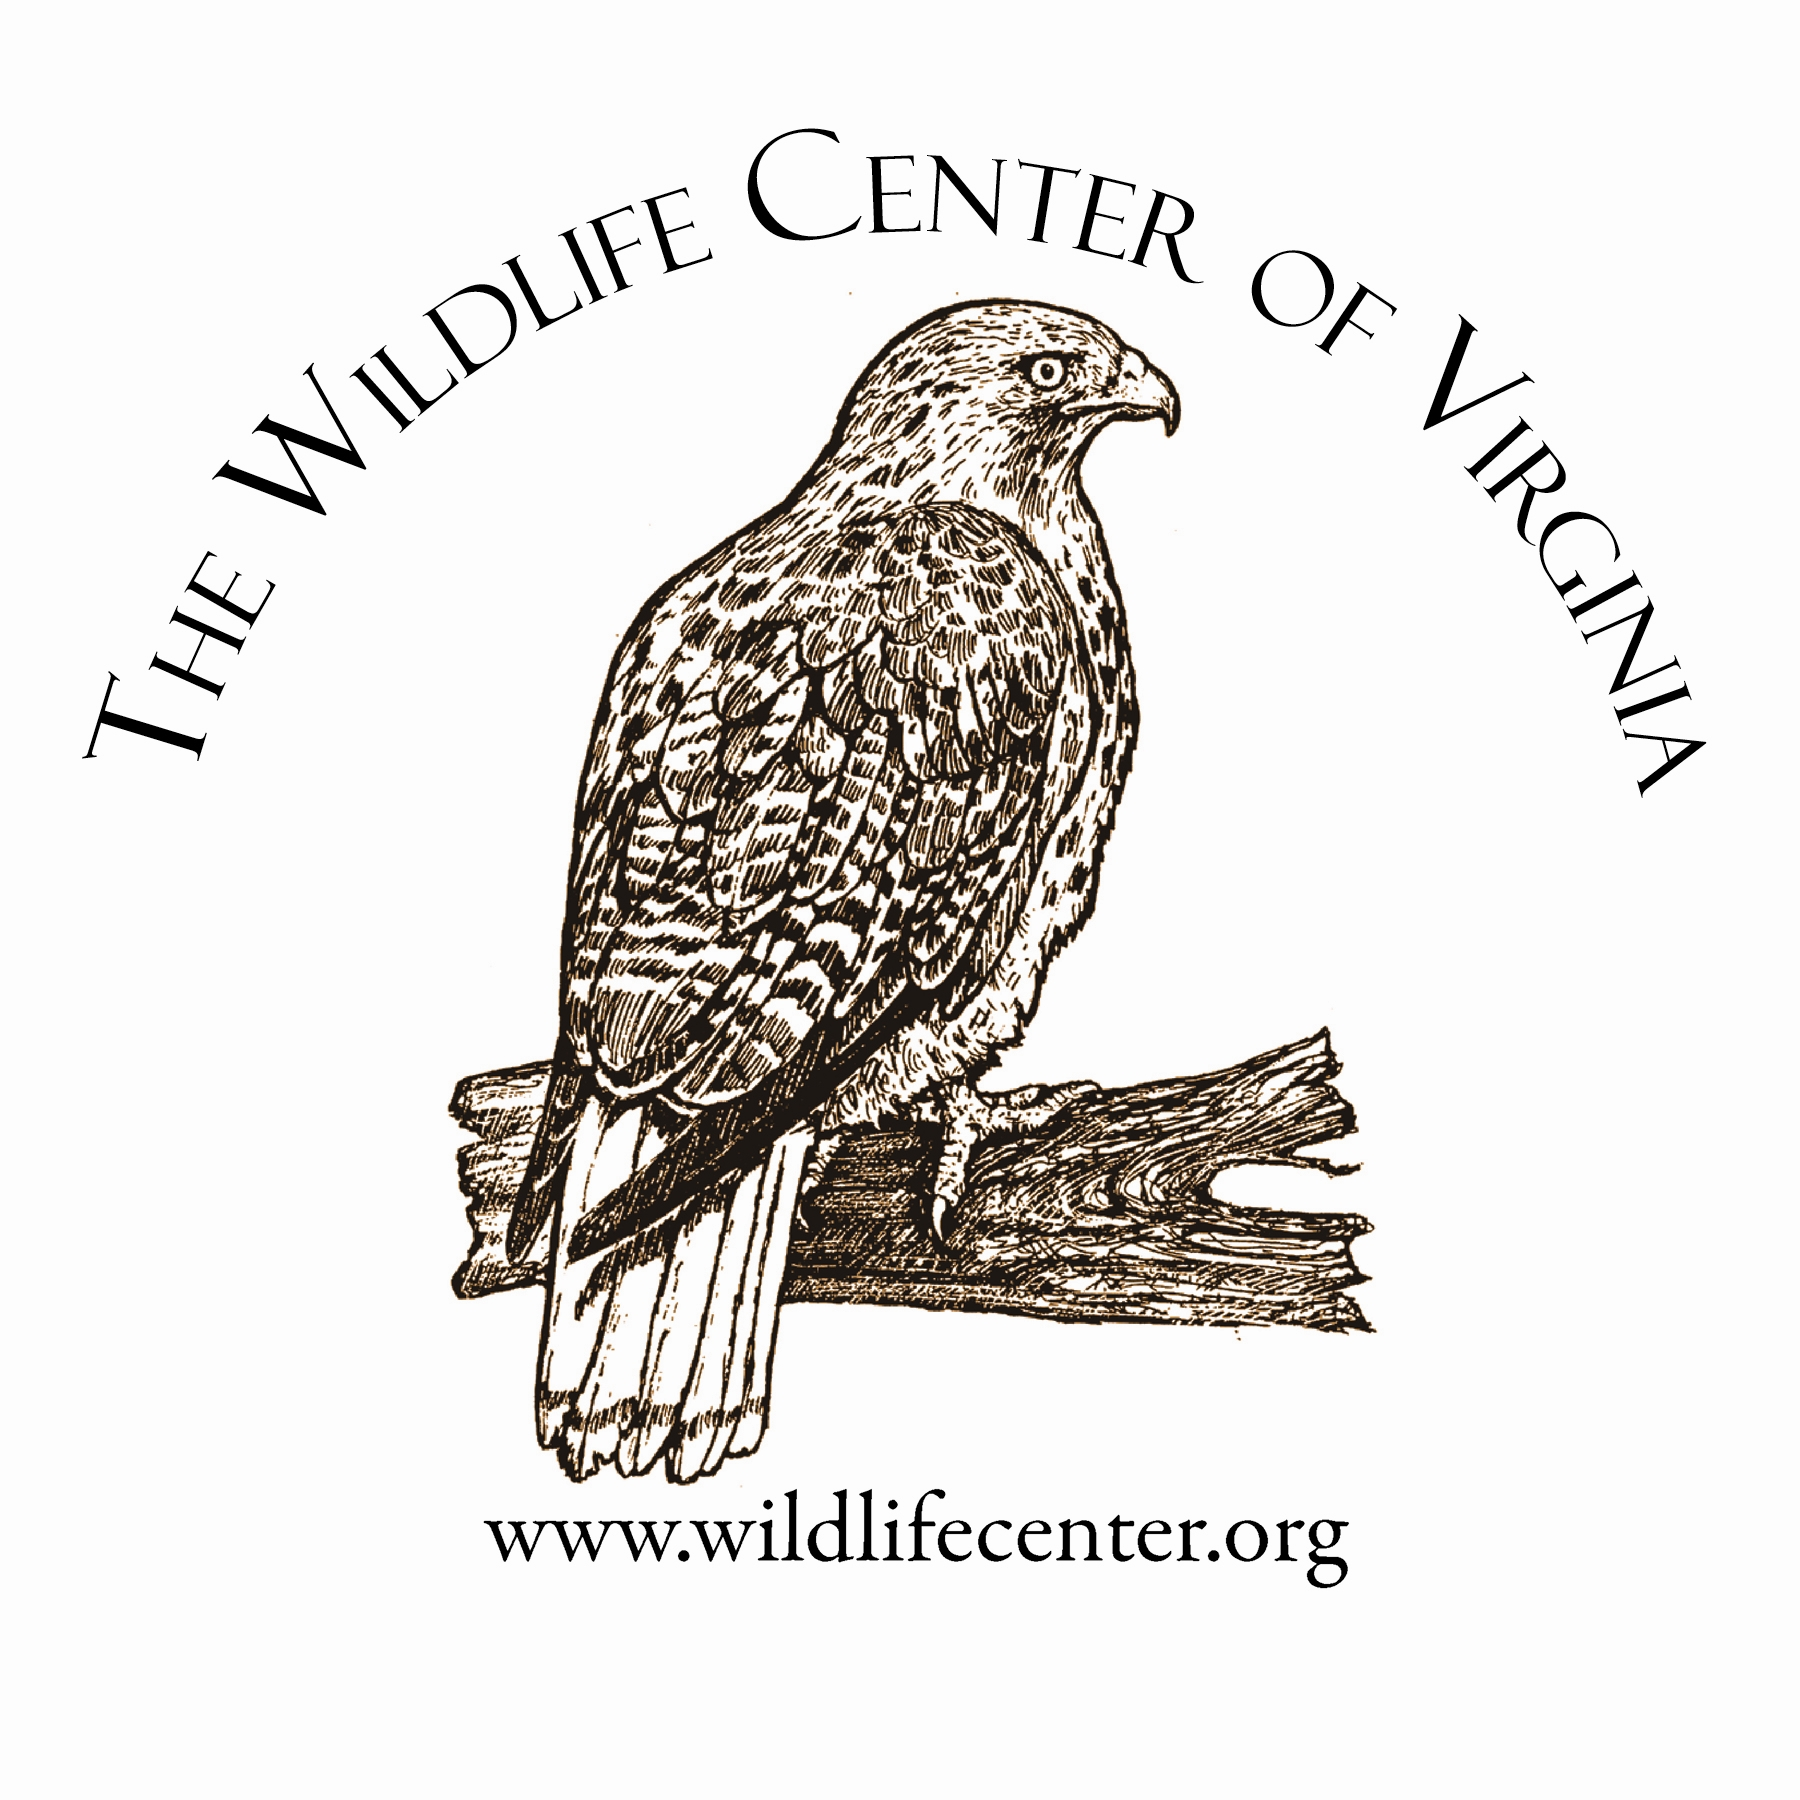 Where I learn what is possible in online communities. WCV is a hospital for native wildlife, teaching the world to care about and to care for wildlife and the environment.  www.wildlifecenter.org